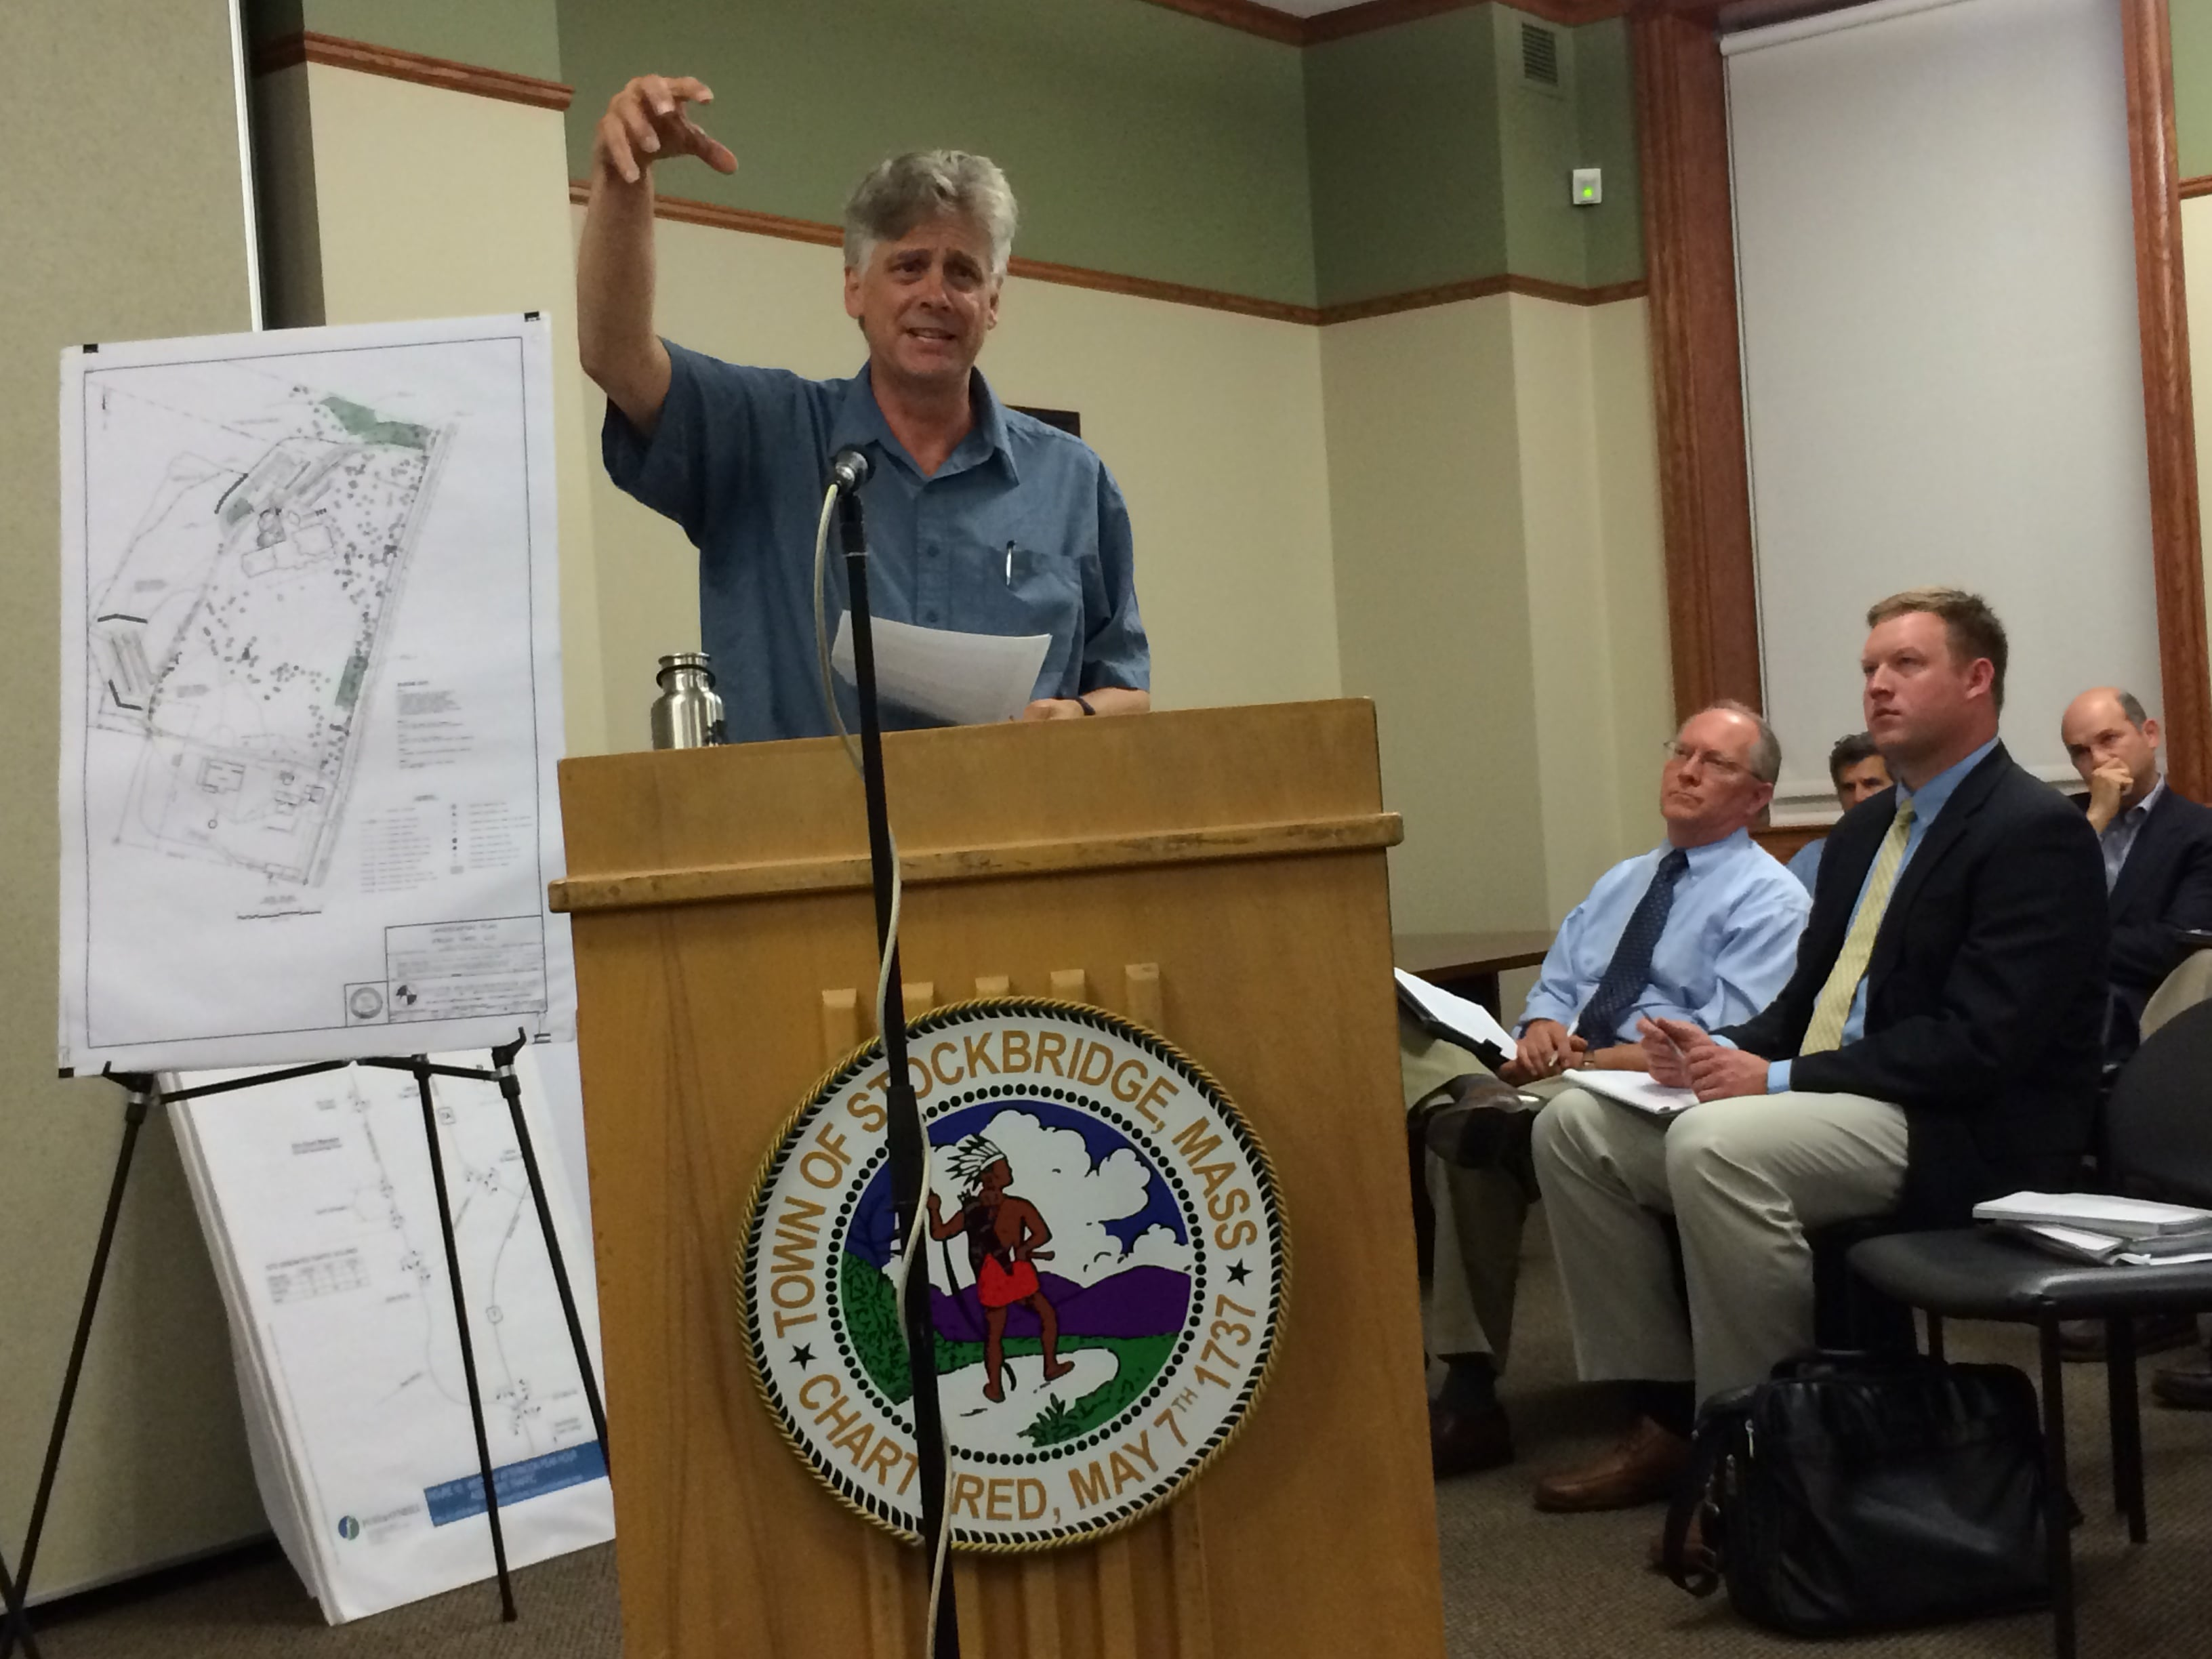 Gregory Whitehead, insisting that lines of sight on hilly Old Stockbridge Road would create hazardous traffic conditions.